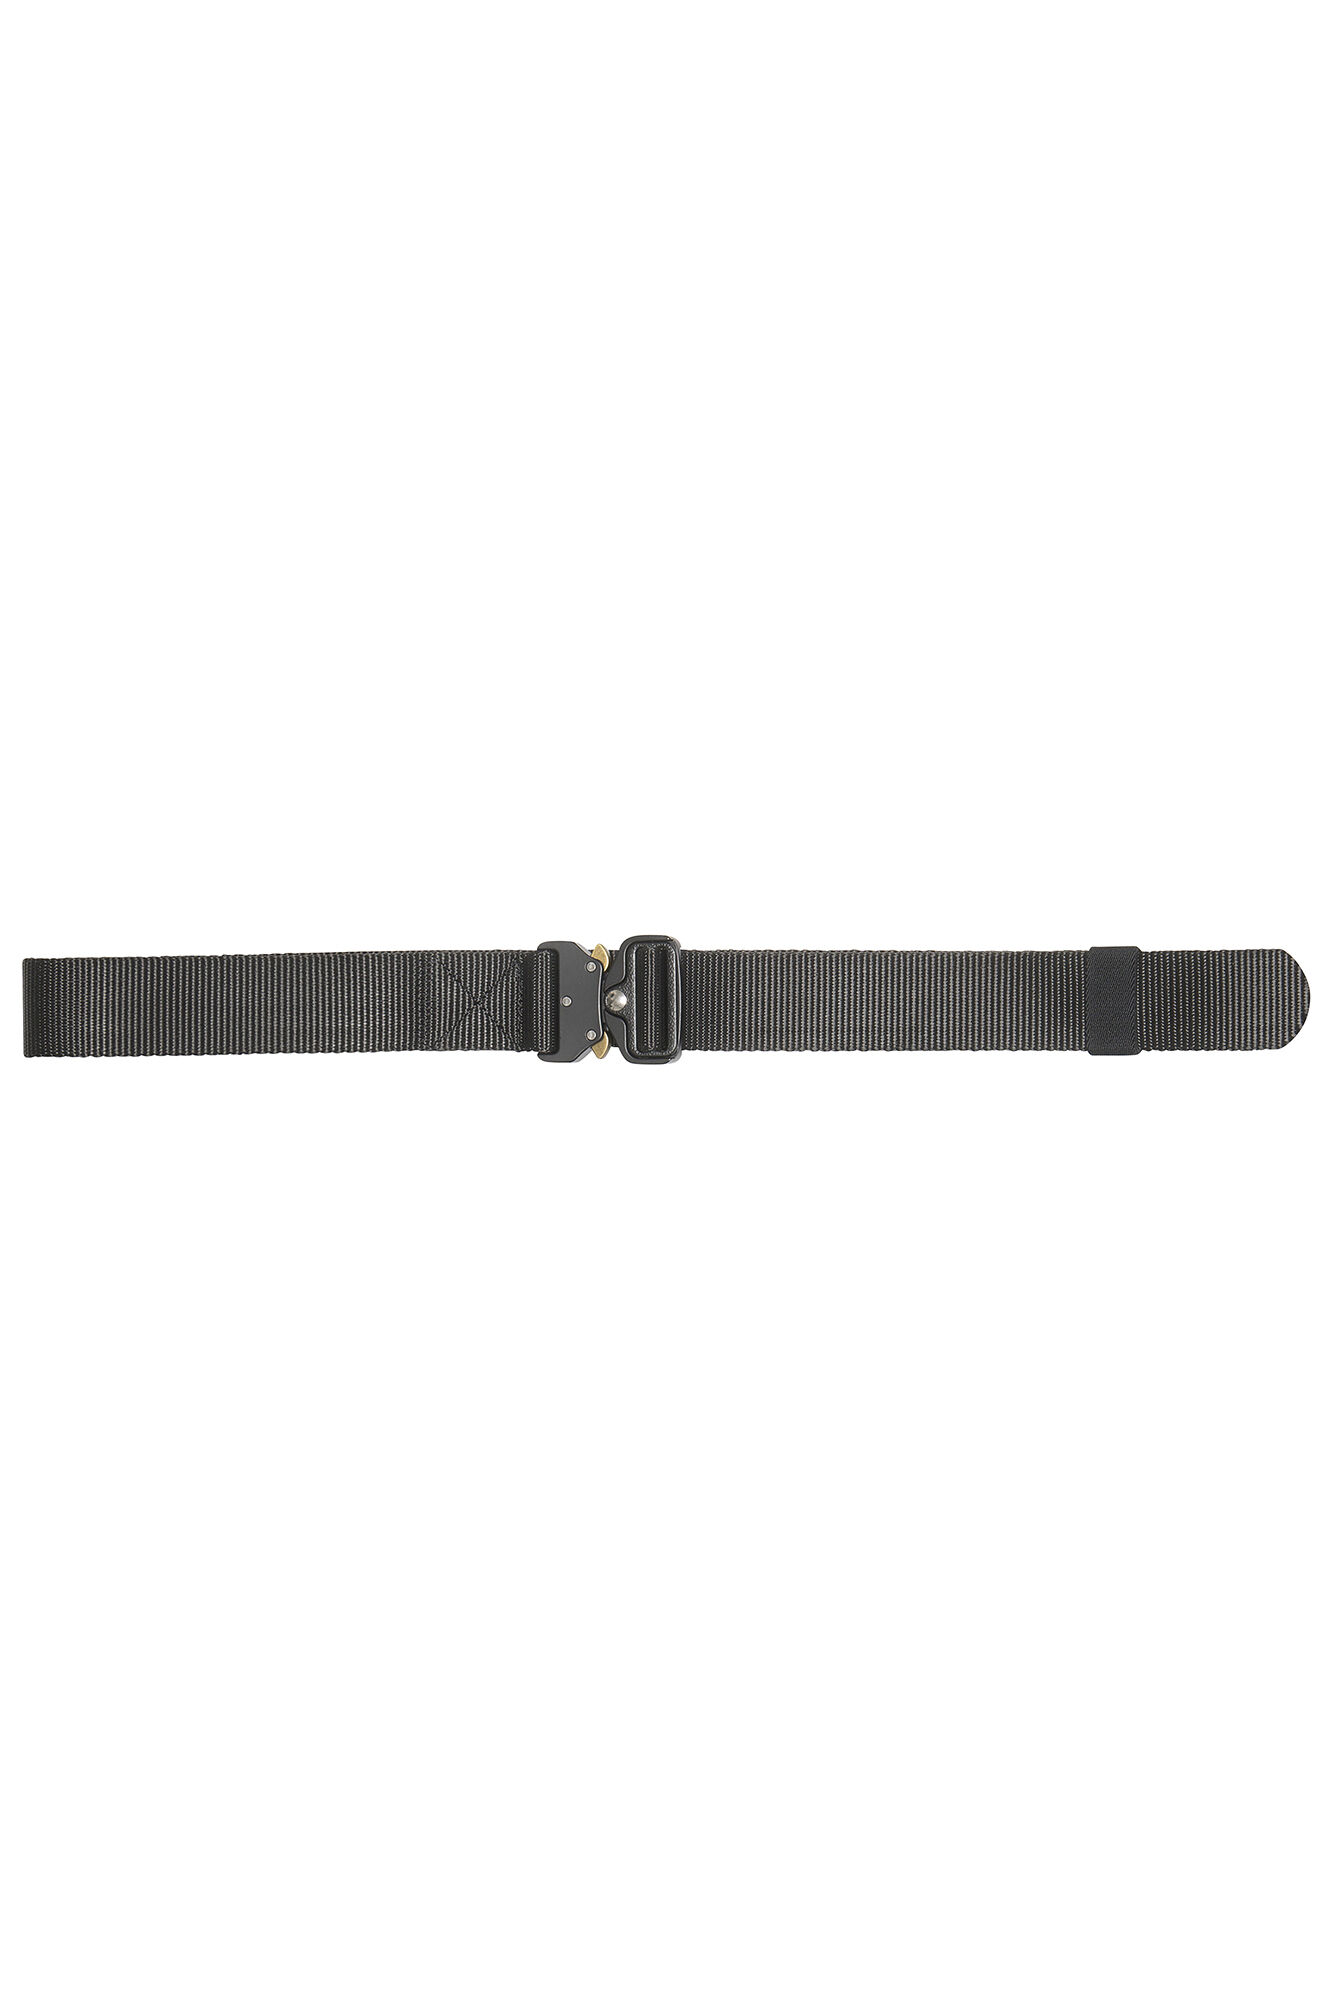 ENPAQUITA BELT 5638, BLACK